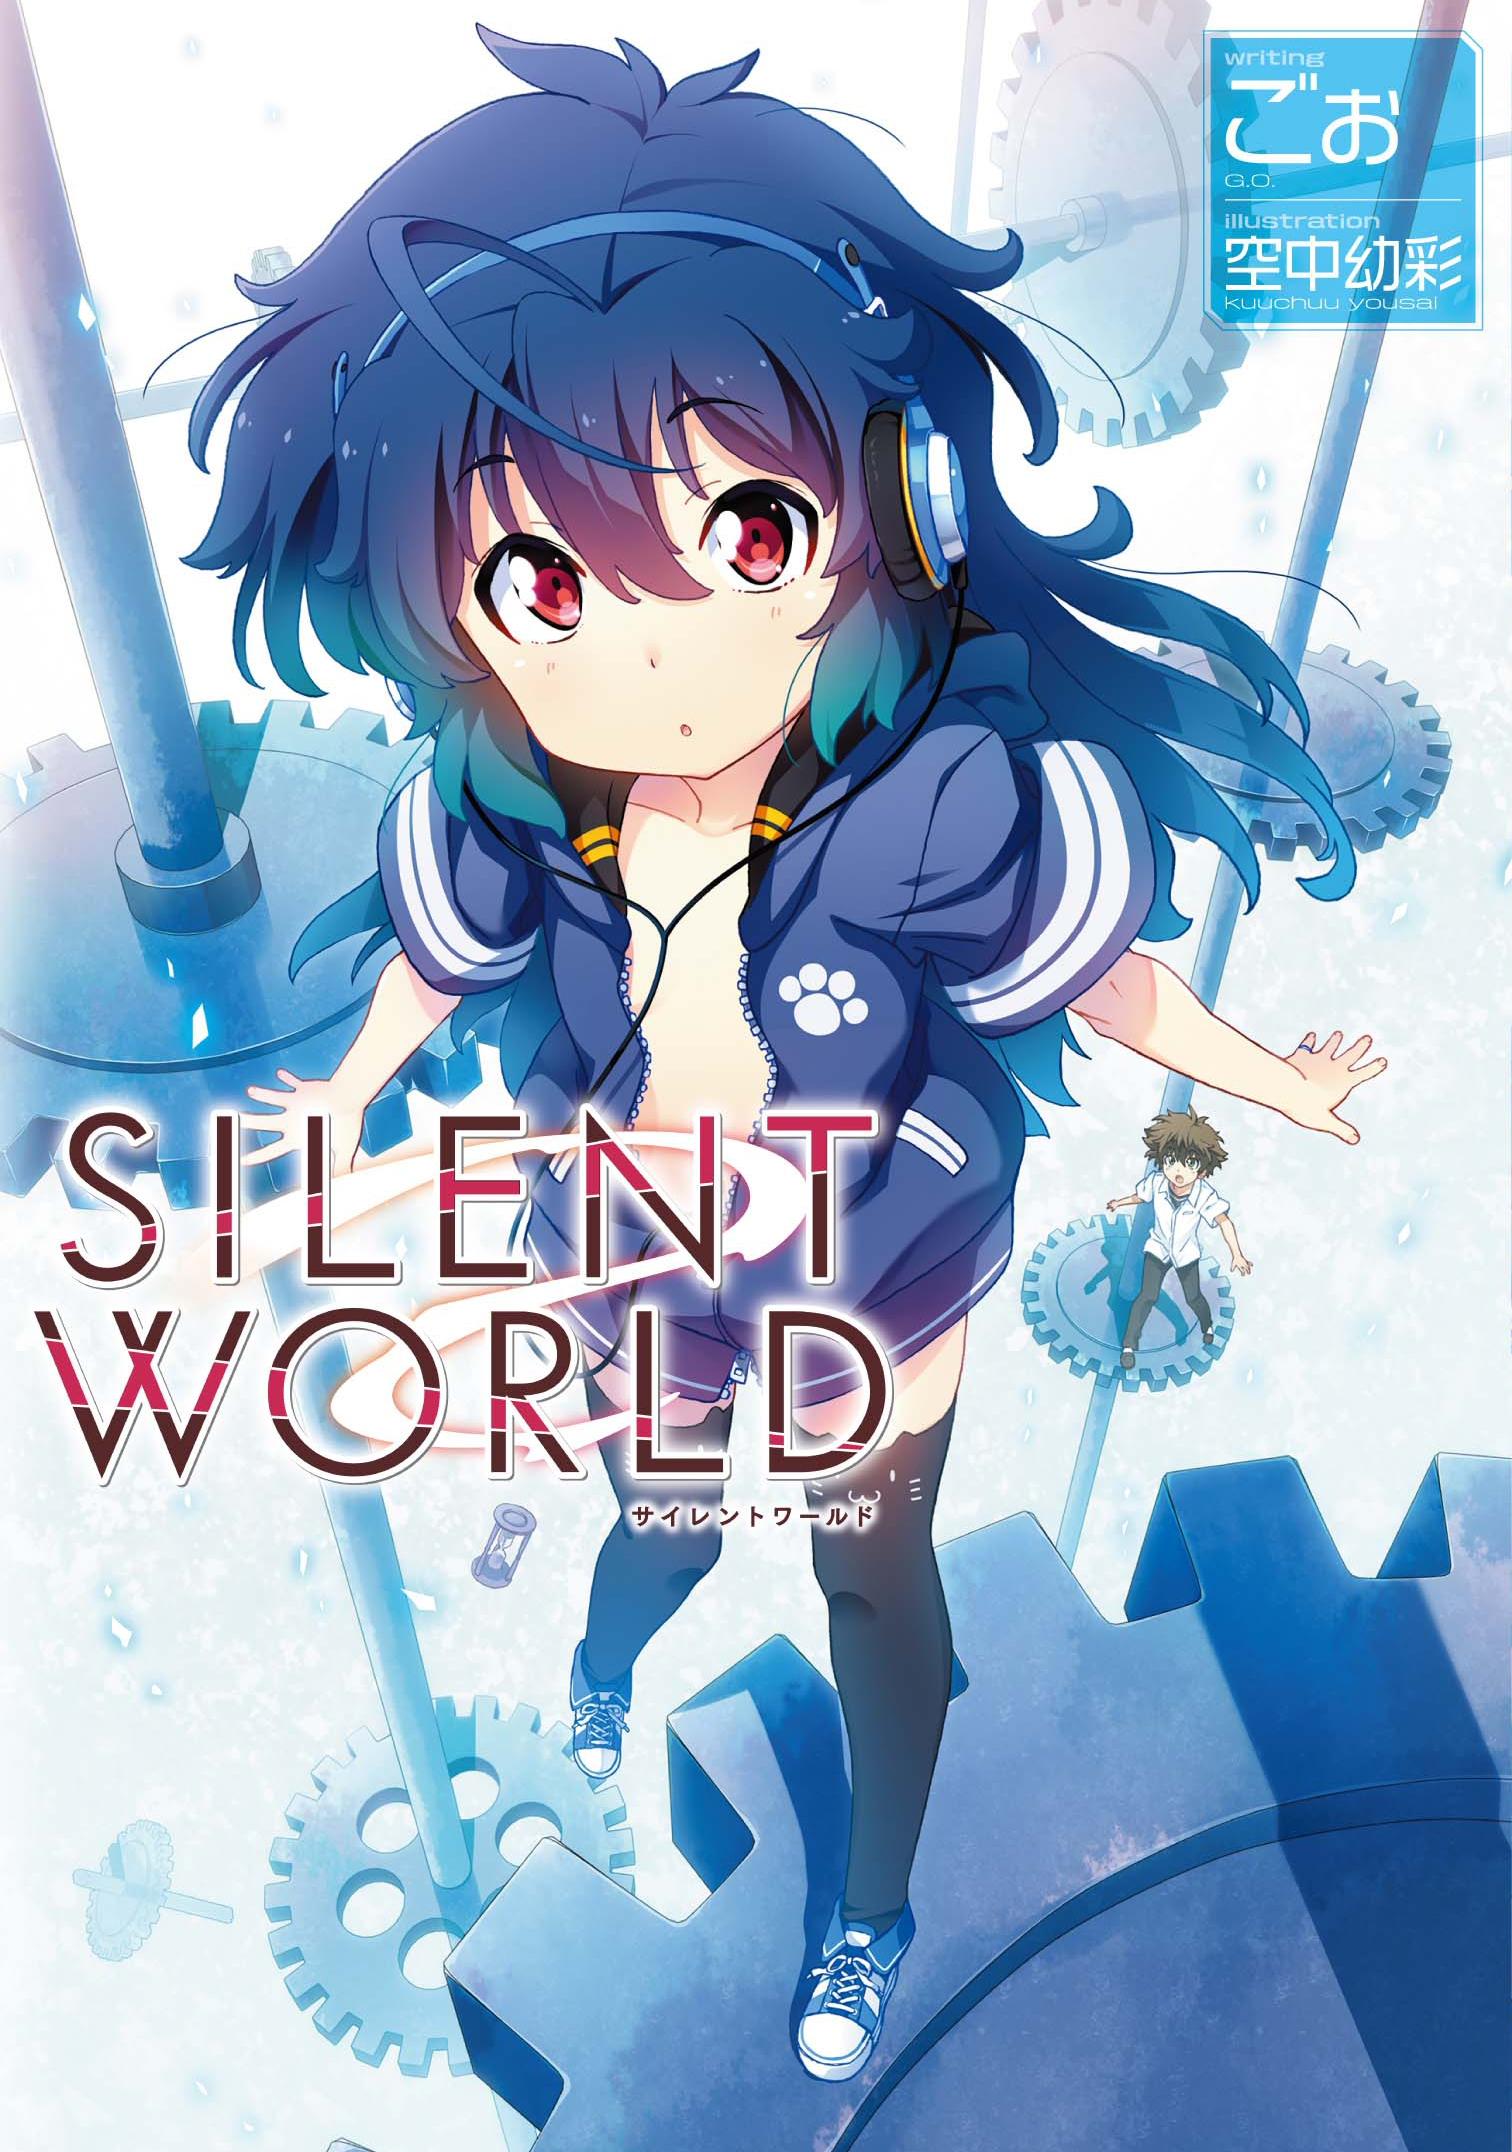 gsn_silentw_cover_4c